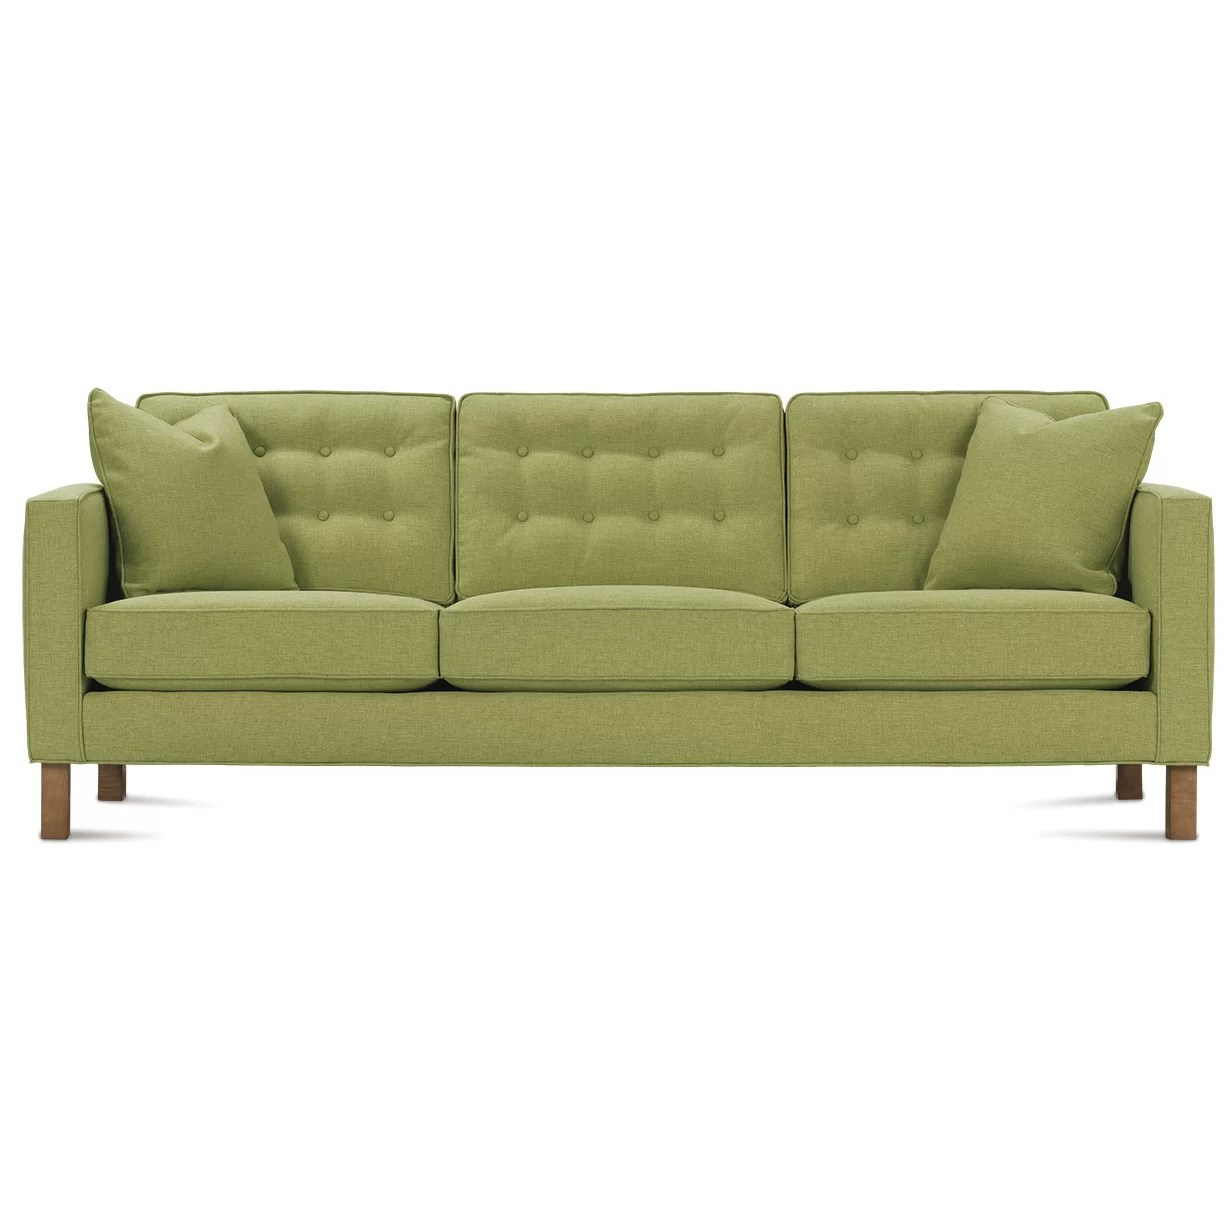 Cane Sofa Set Price In Delhi: Brighton 6pc Corner Sofa Outdoor